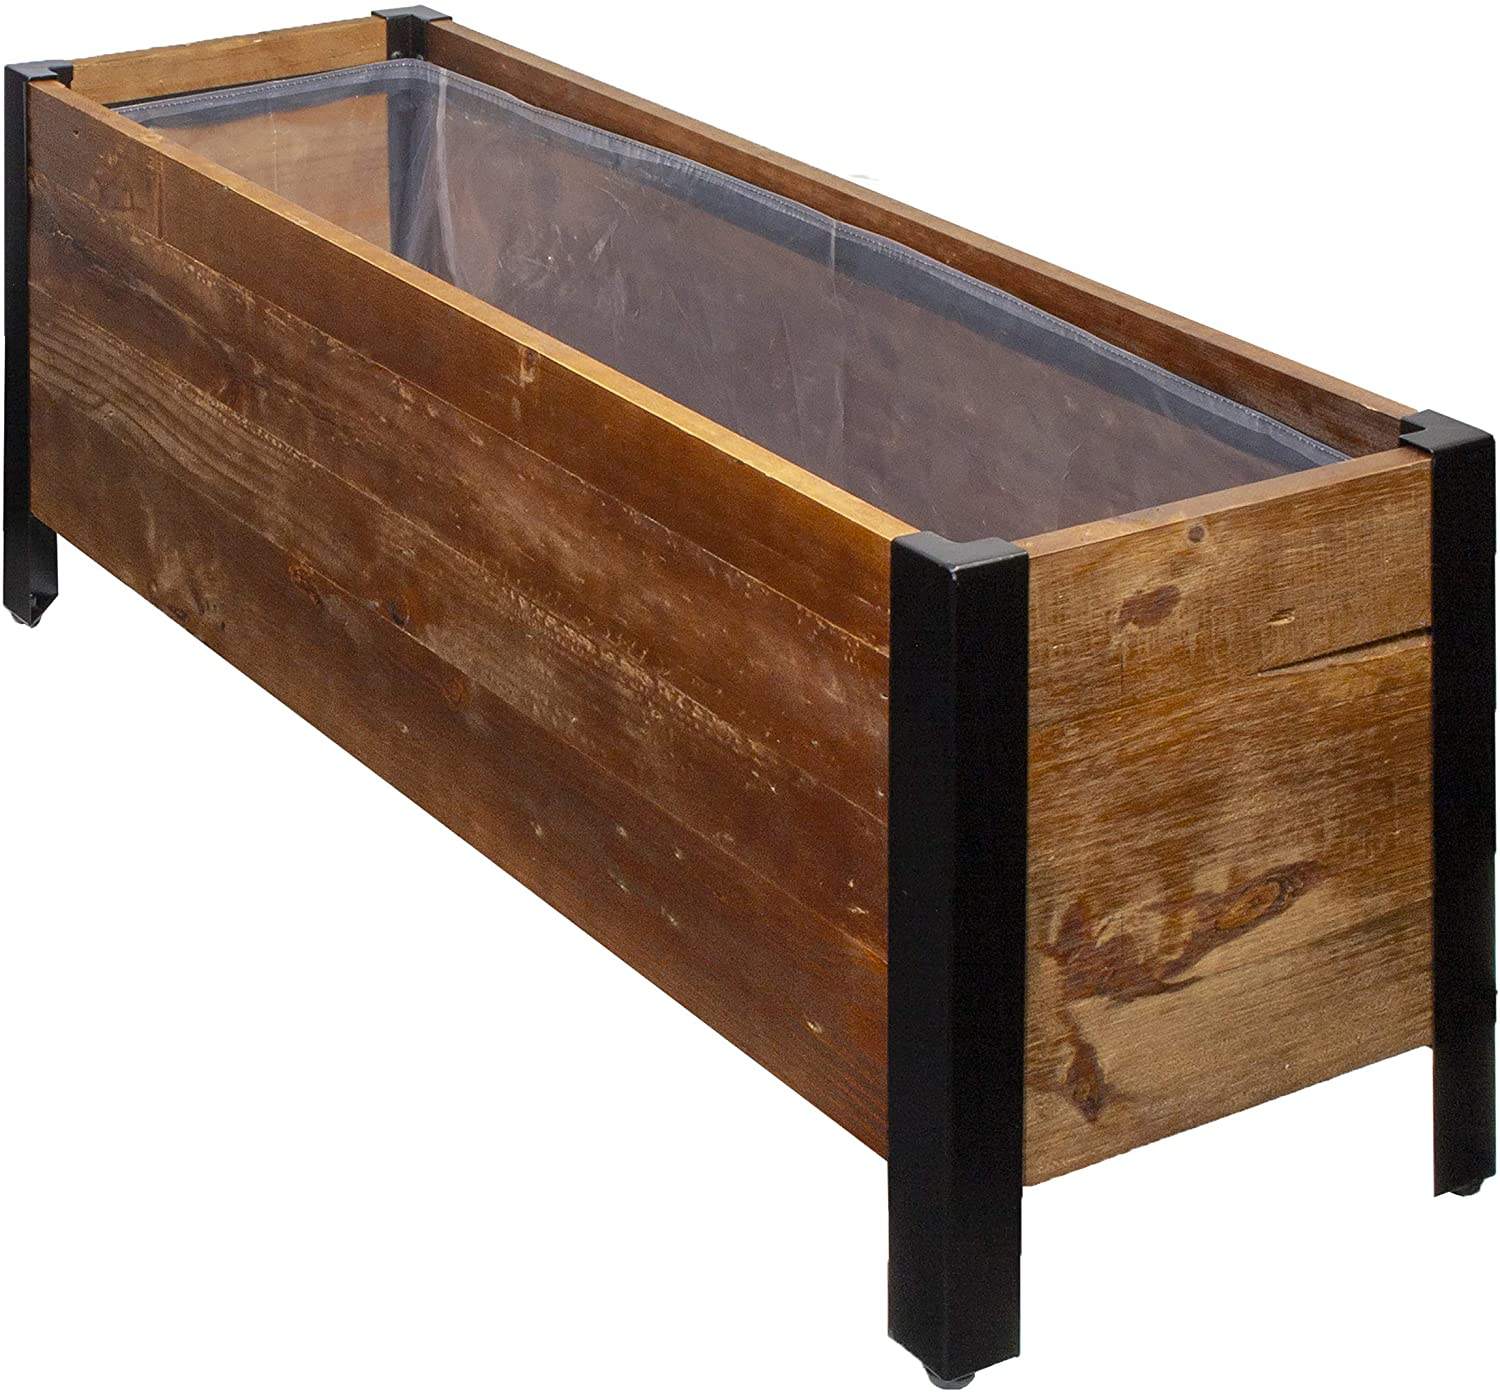 AmazonBasics Recycled Wood Rectangular Garden Planter